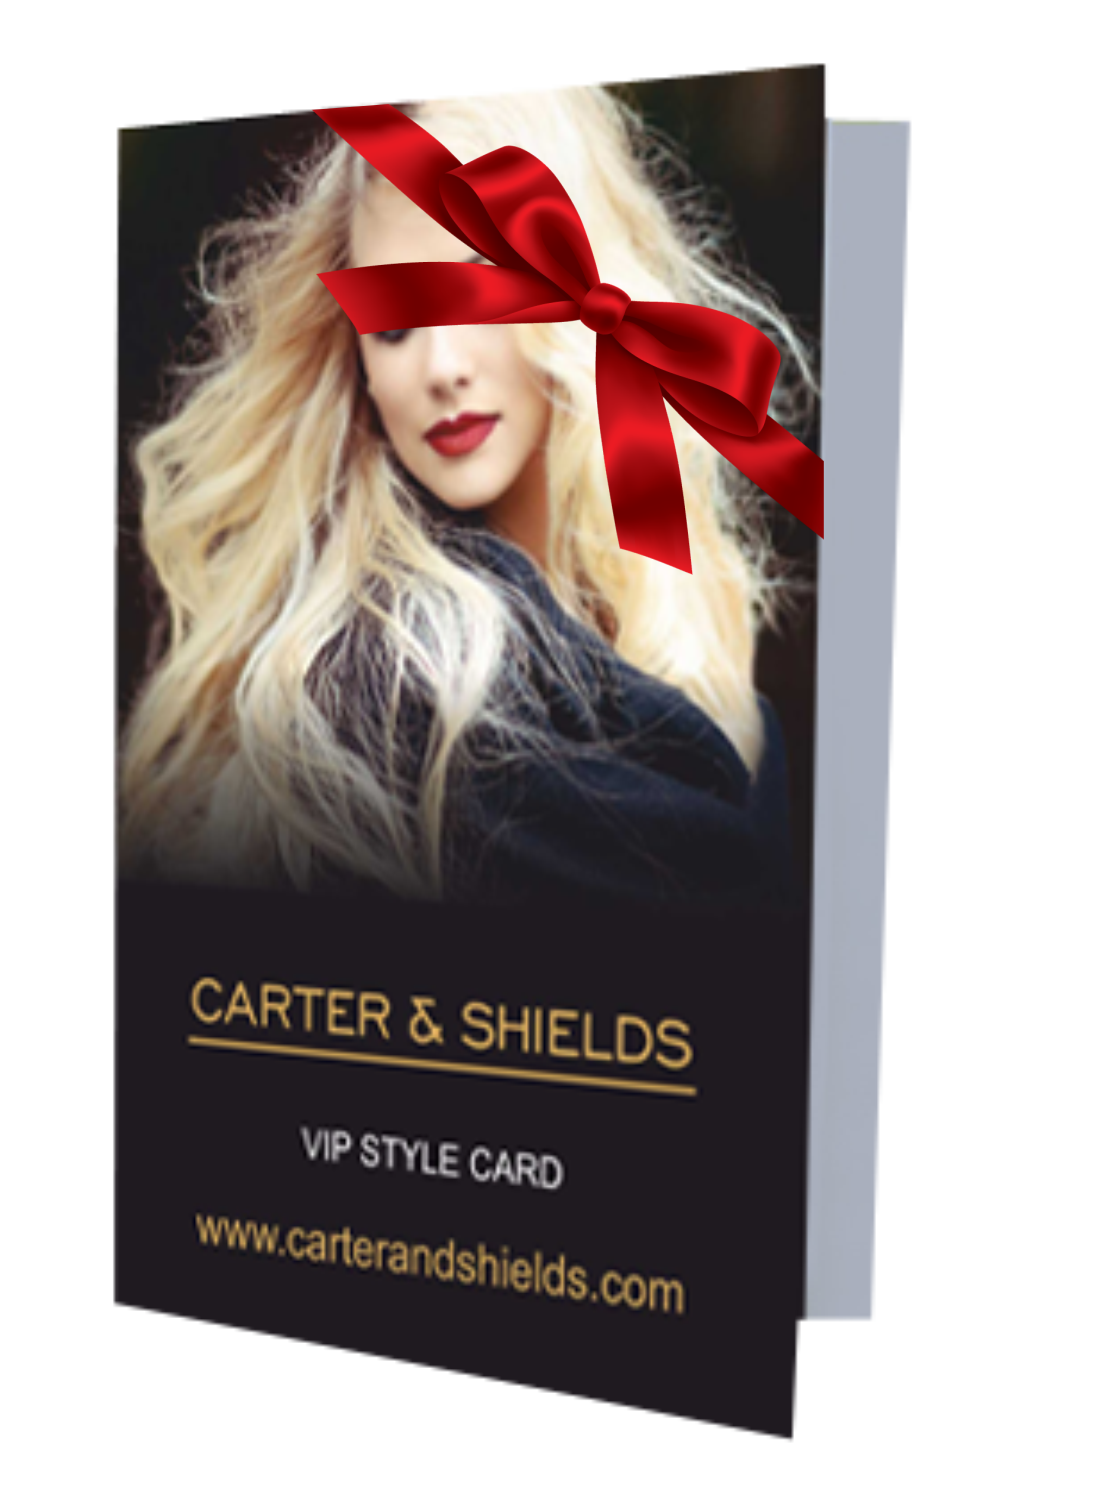 hairdresser offers Carter & Shields